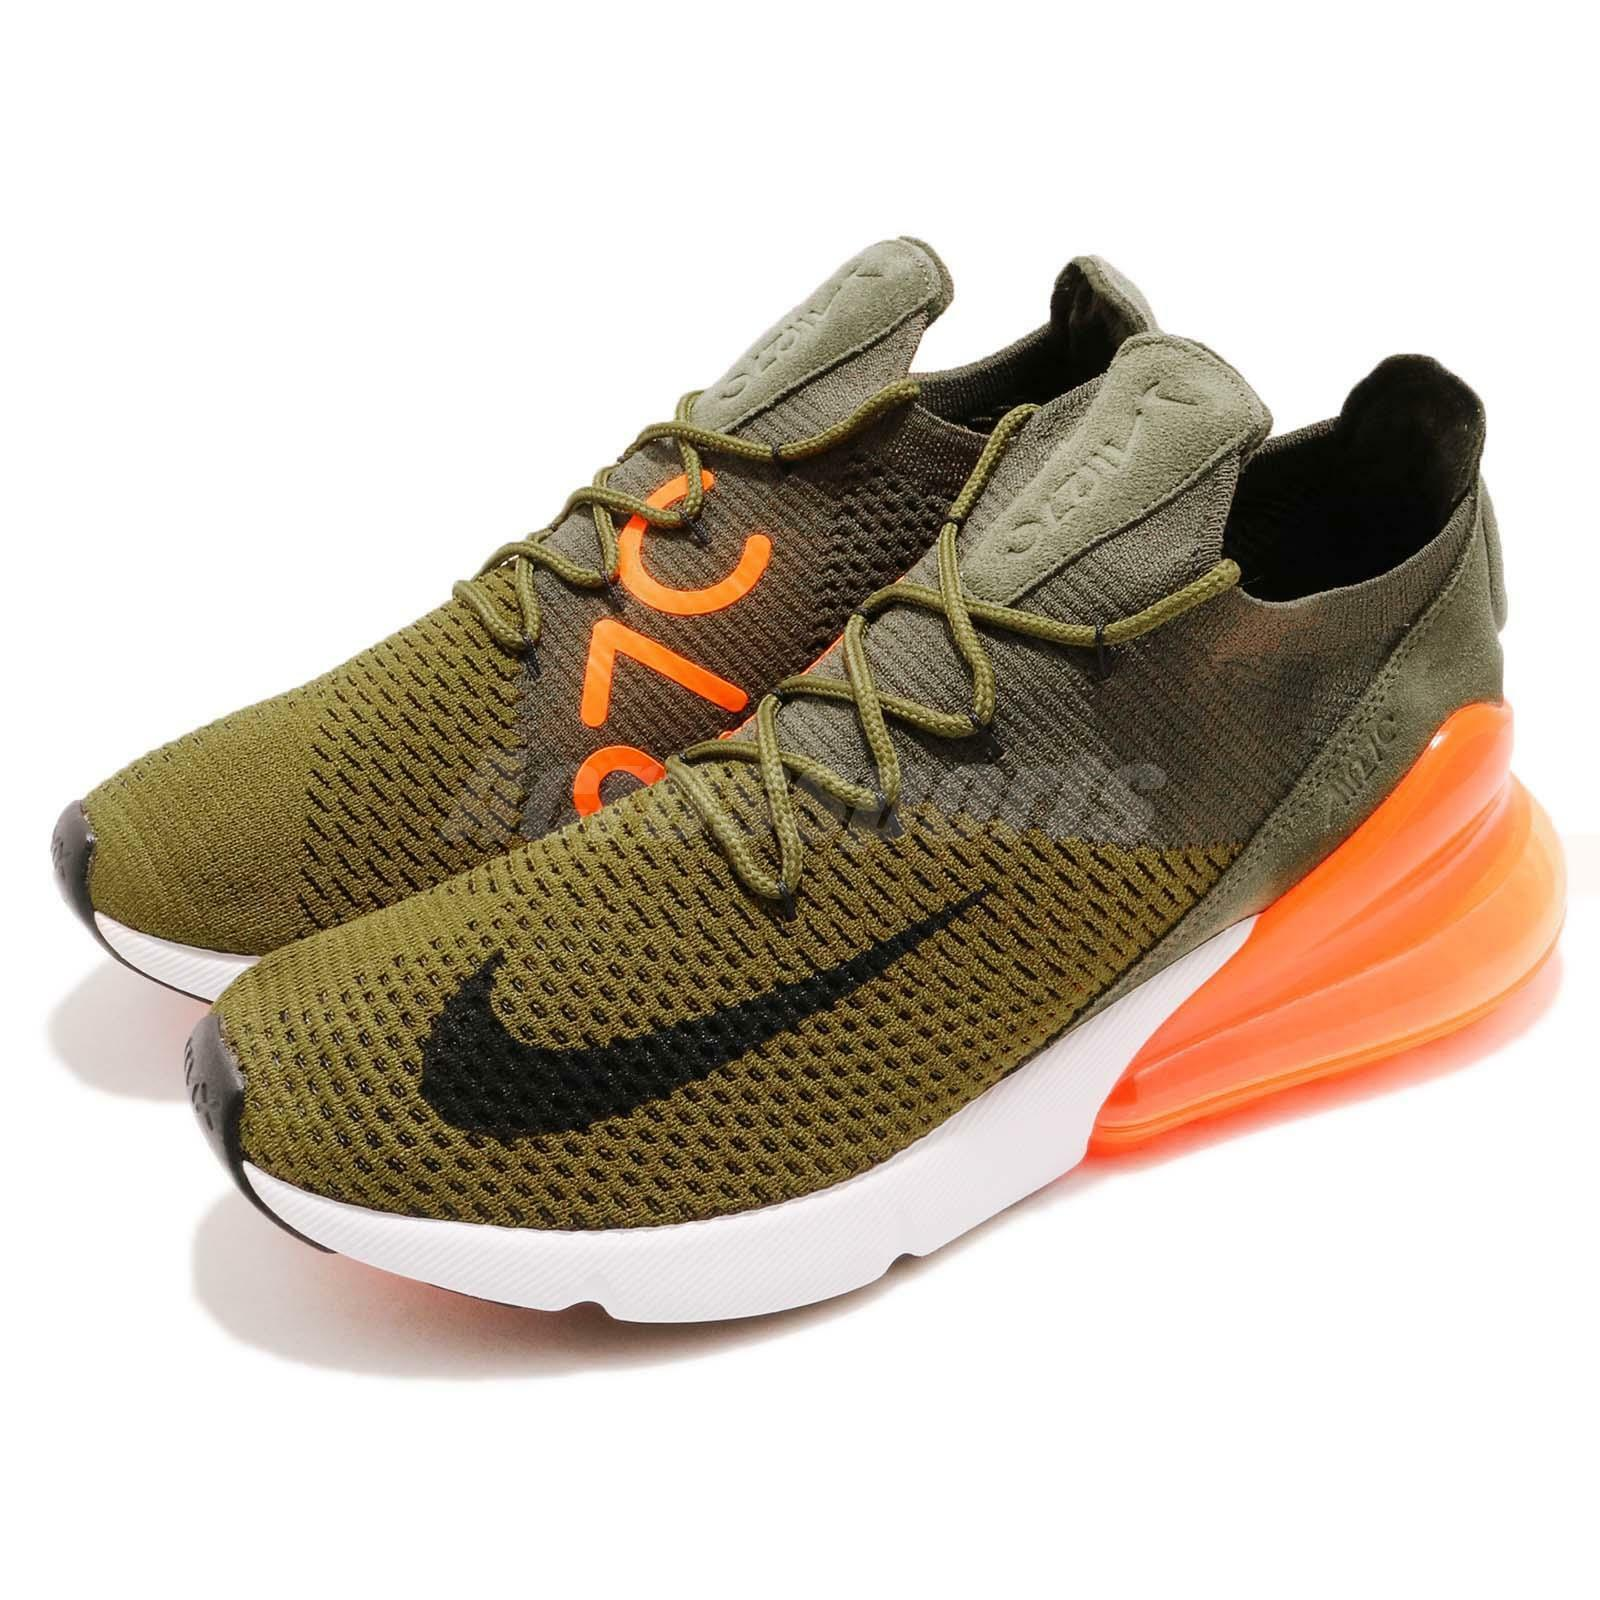 differently the cheapest detailed images Nike Air Max 270 Flyknit Olive Flak Cargo Khaki Orange Men Shoes AO1023-301